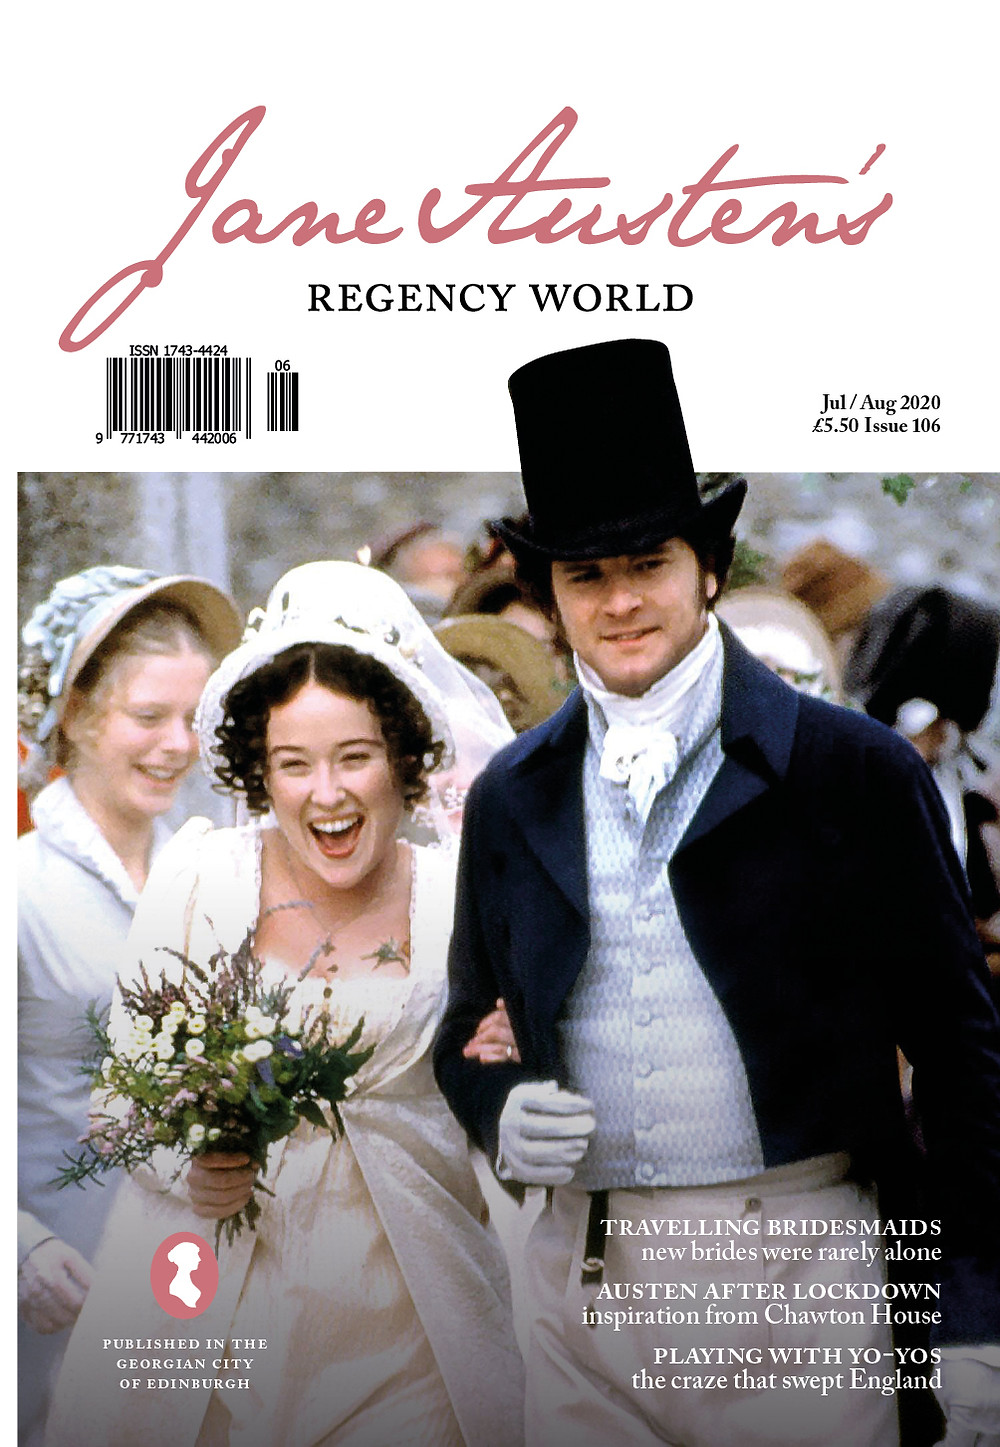 Jane Austen's Regency World magazine July/August 2020 cover